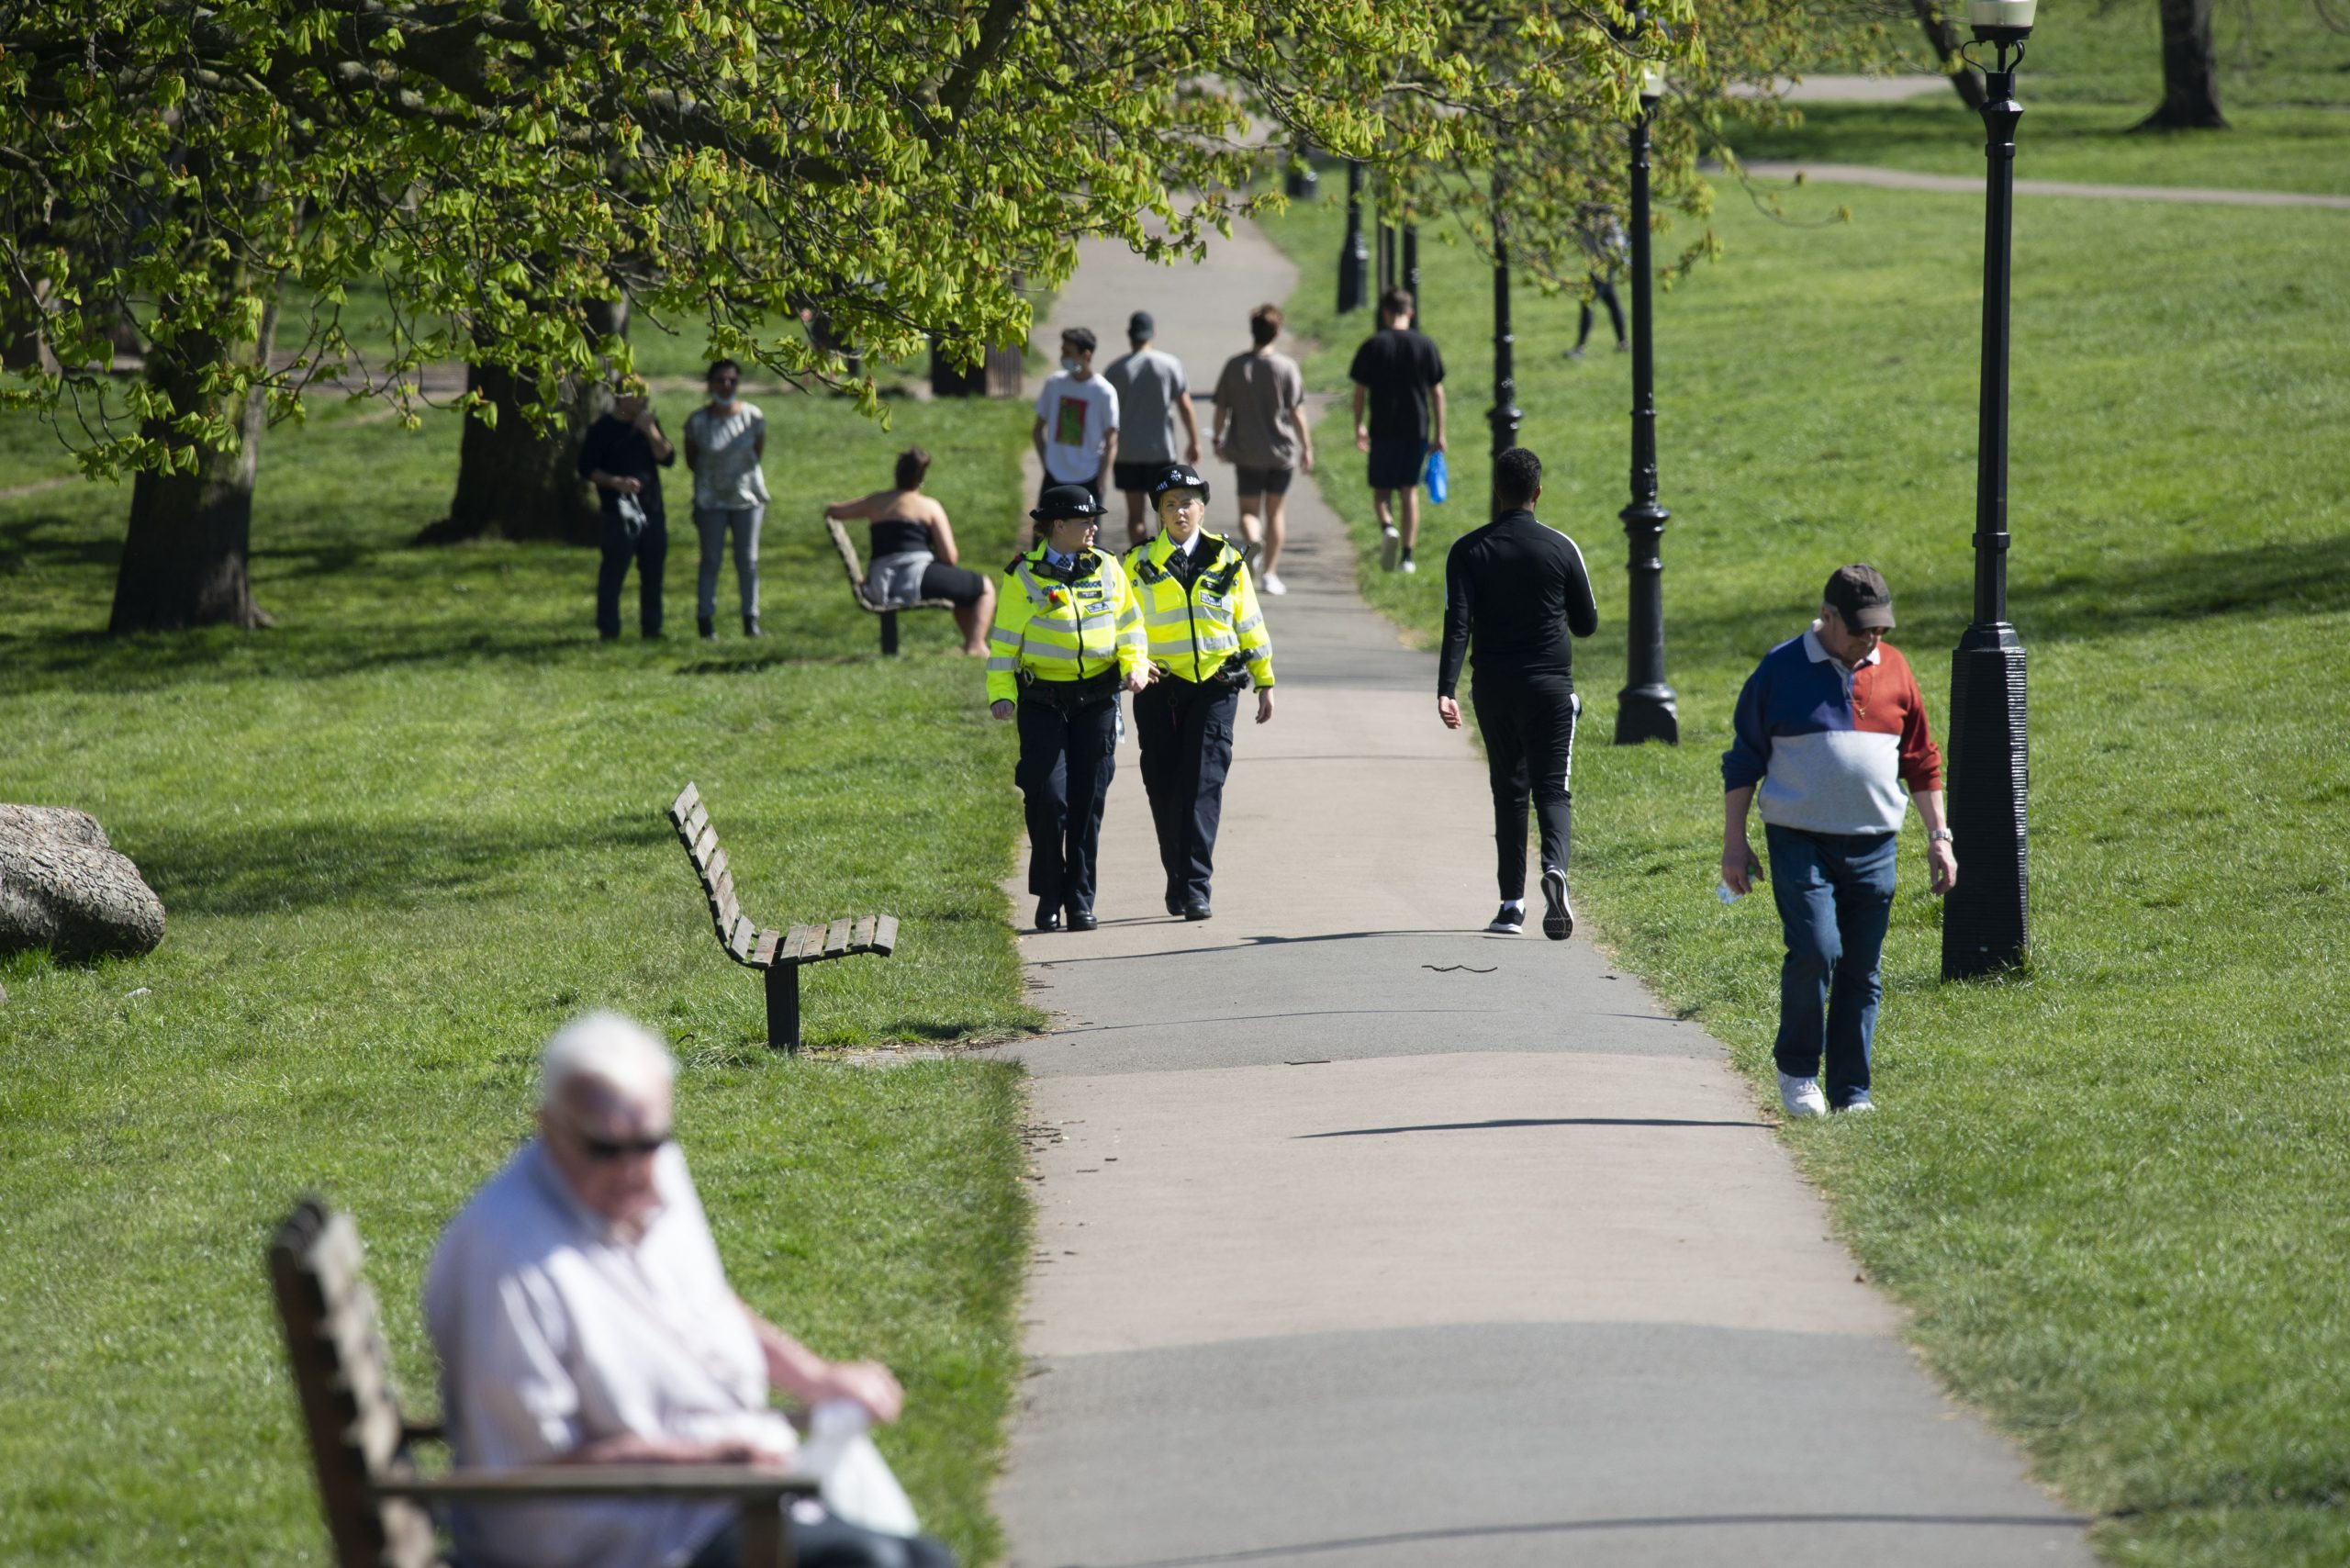 UK police patrol a park. Coronavirus: Newborn baby becomes youngest US victim of COVID-19